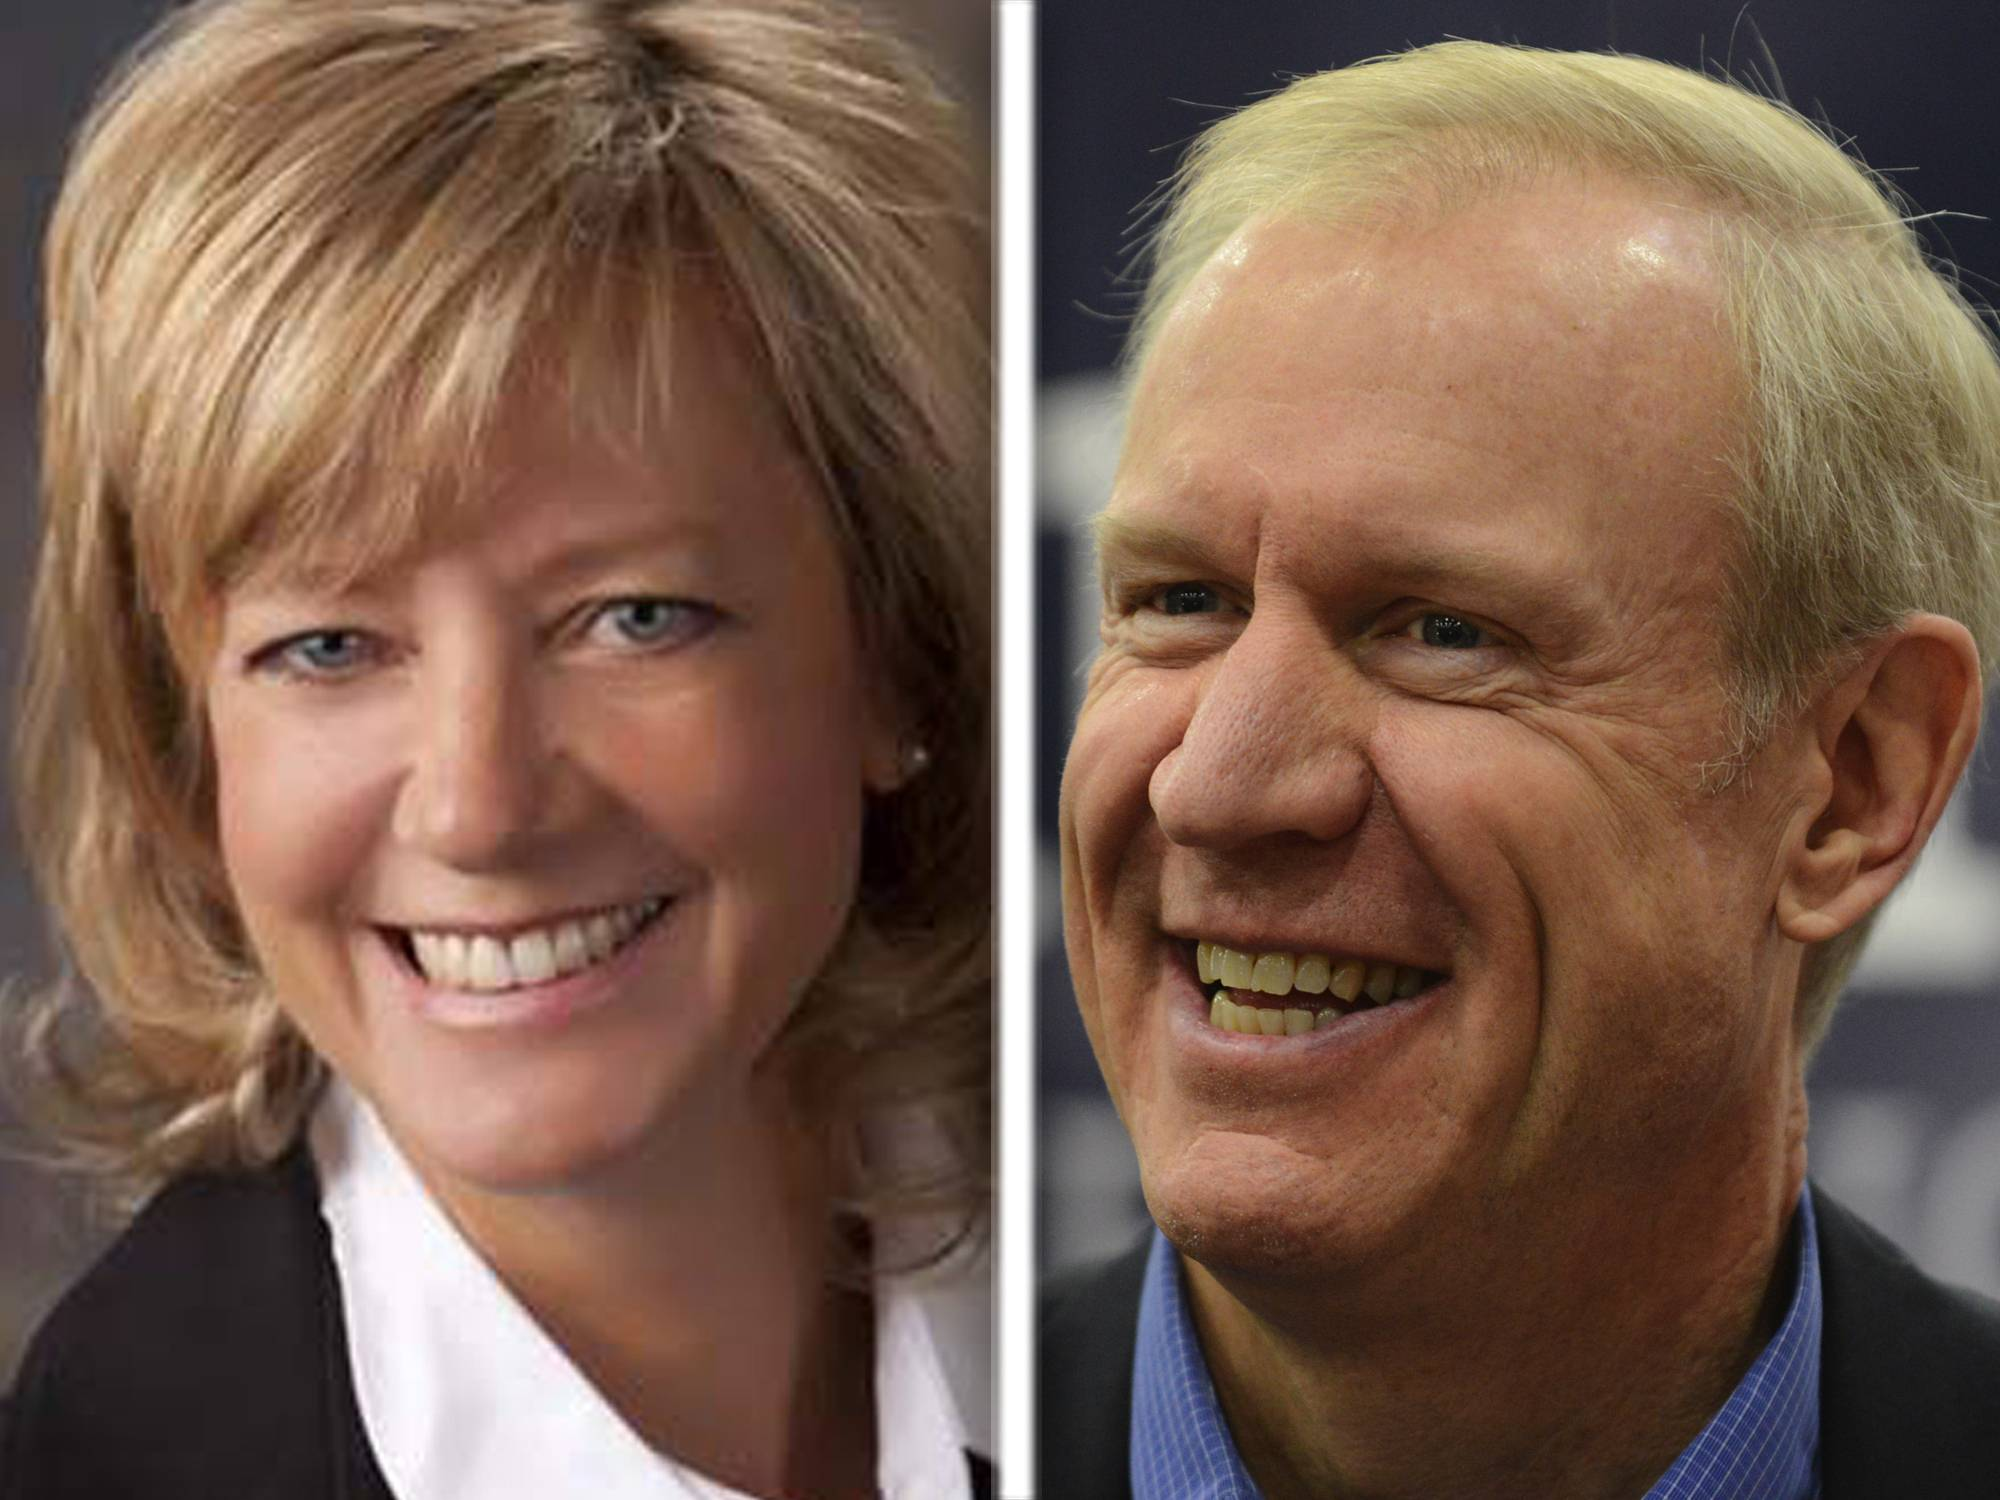 Jeanne Ives, left, and Bruce Rauner, right, are running for the Republican nomination for governor.